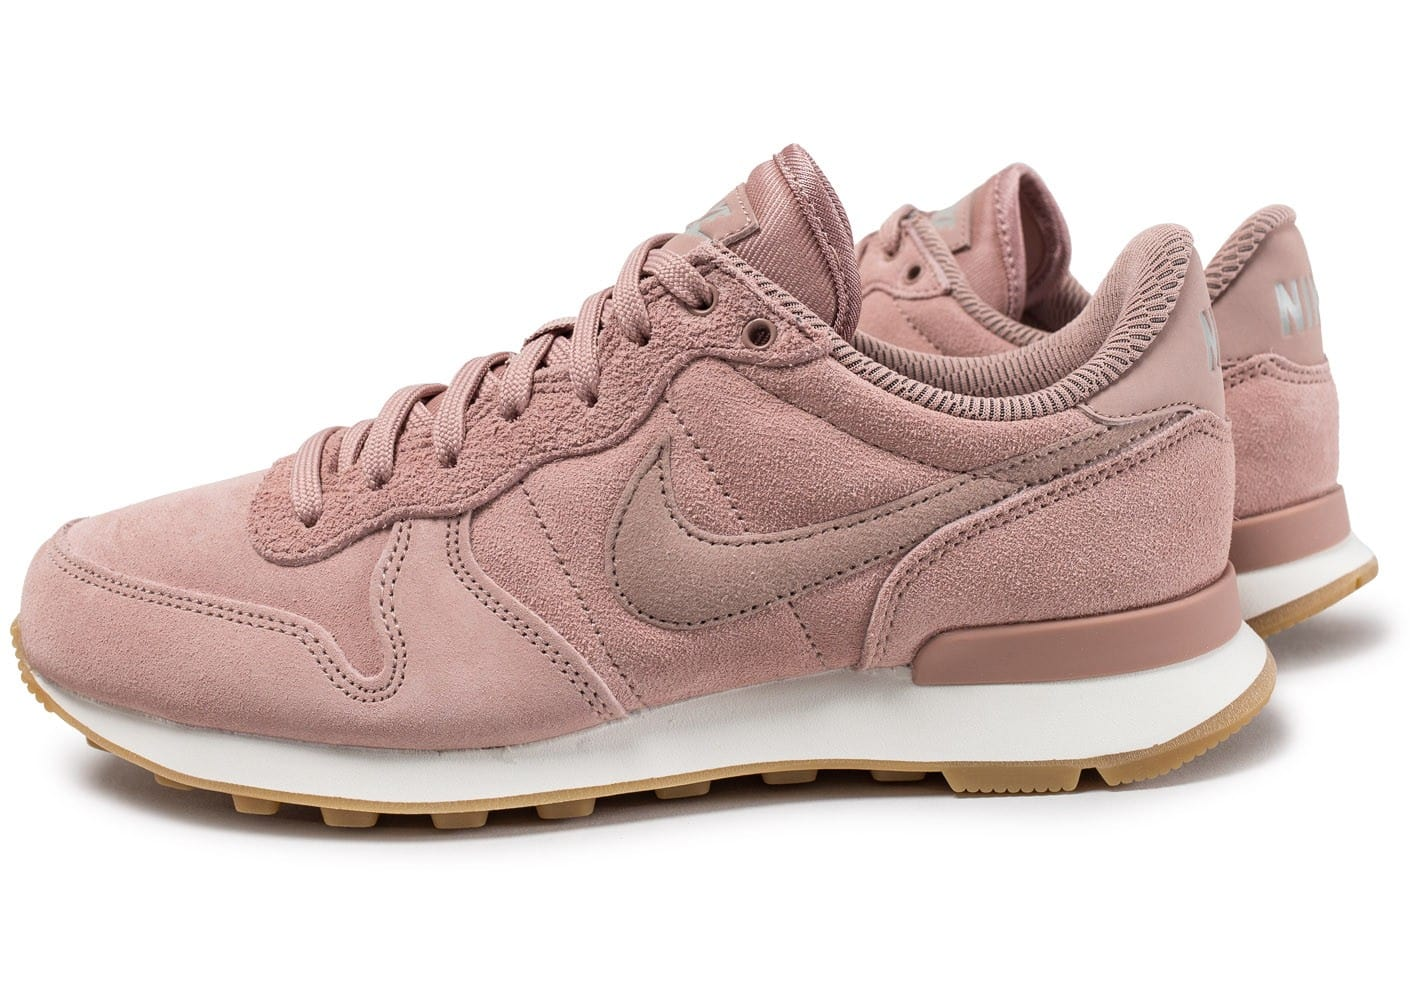 nike internationalist chausport